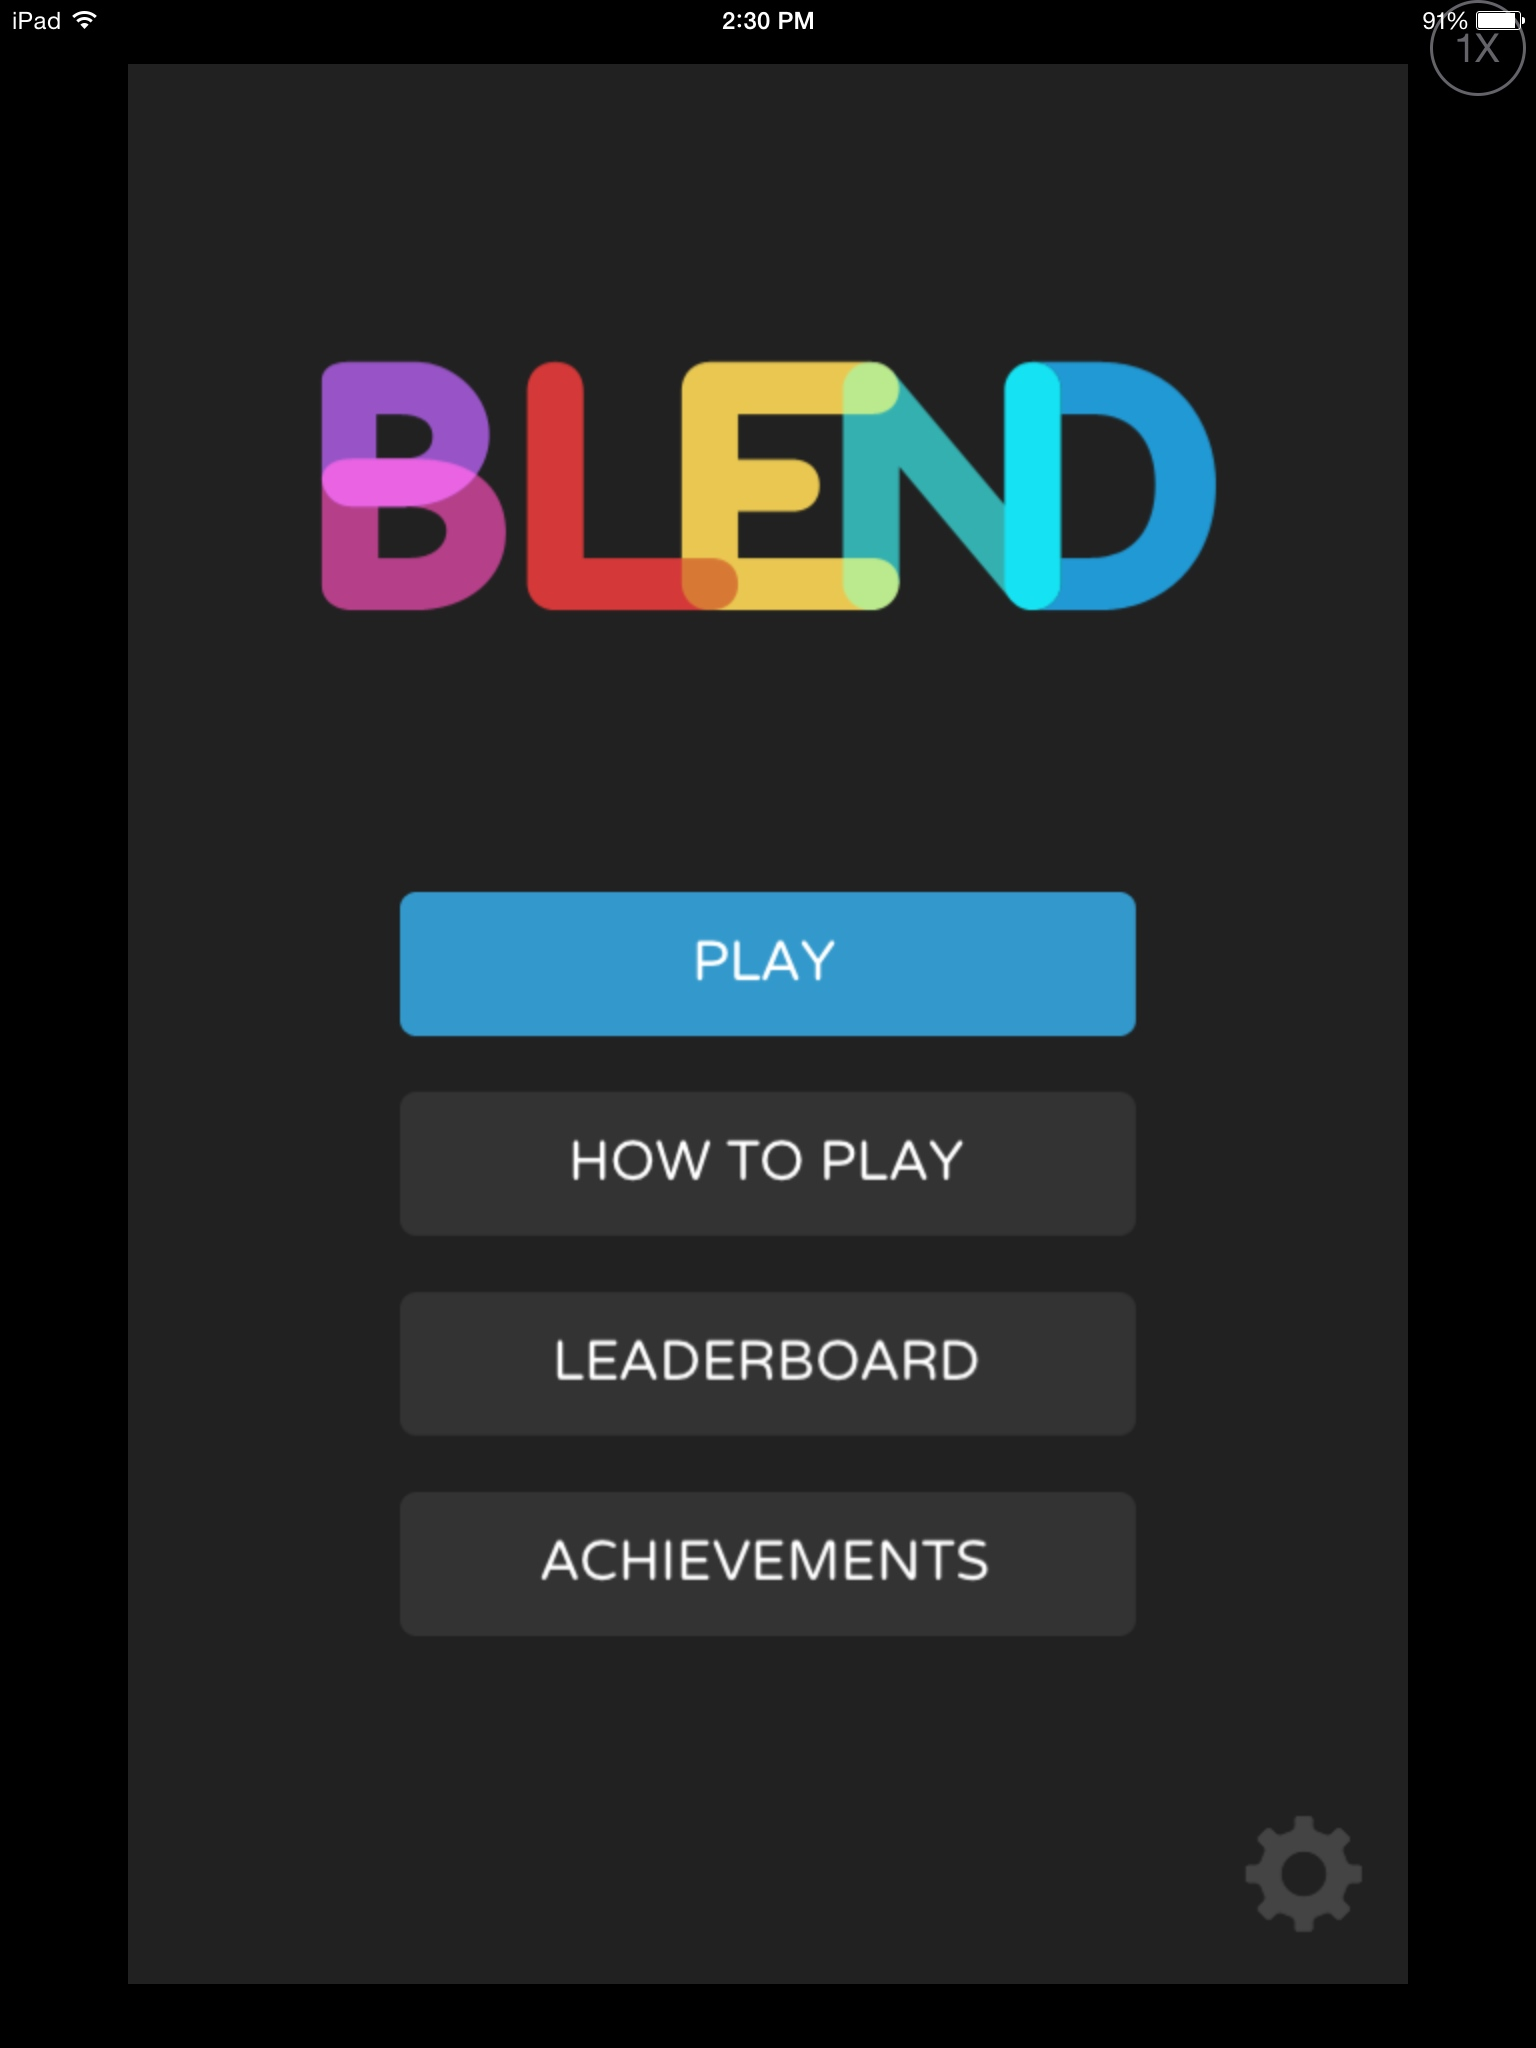 Blend: The Game iOS and Android Game Review - Unique yet Flawed